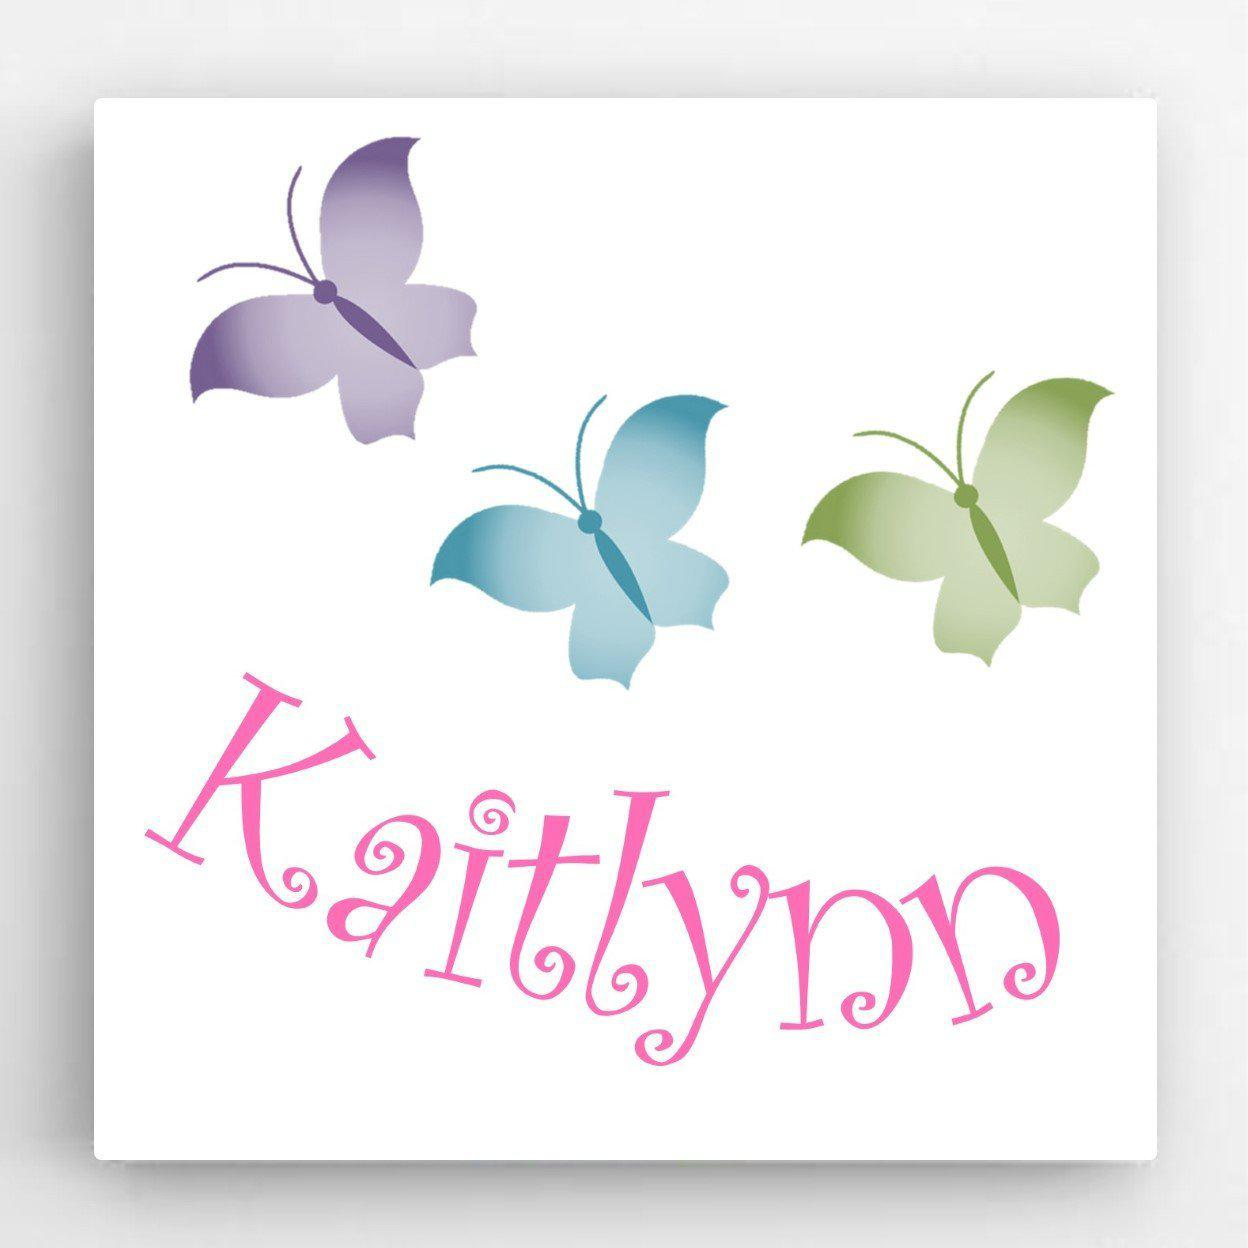 Personalized-Kids-Canvas-Signs-5-unique-designs